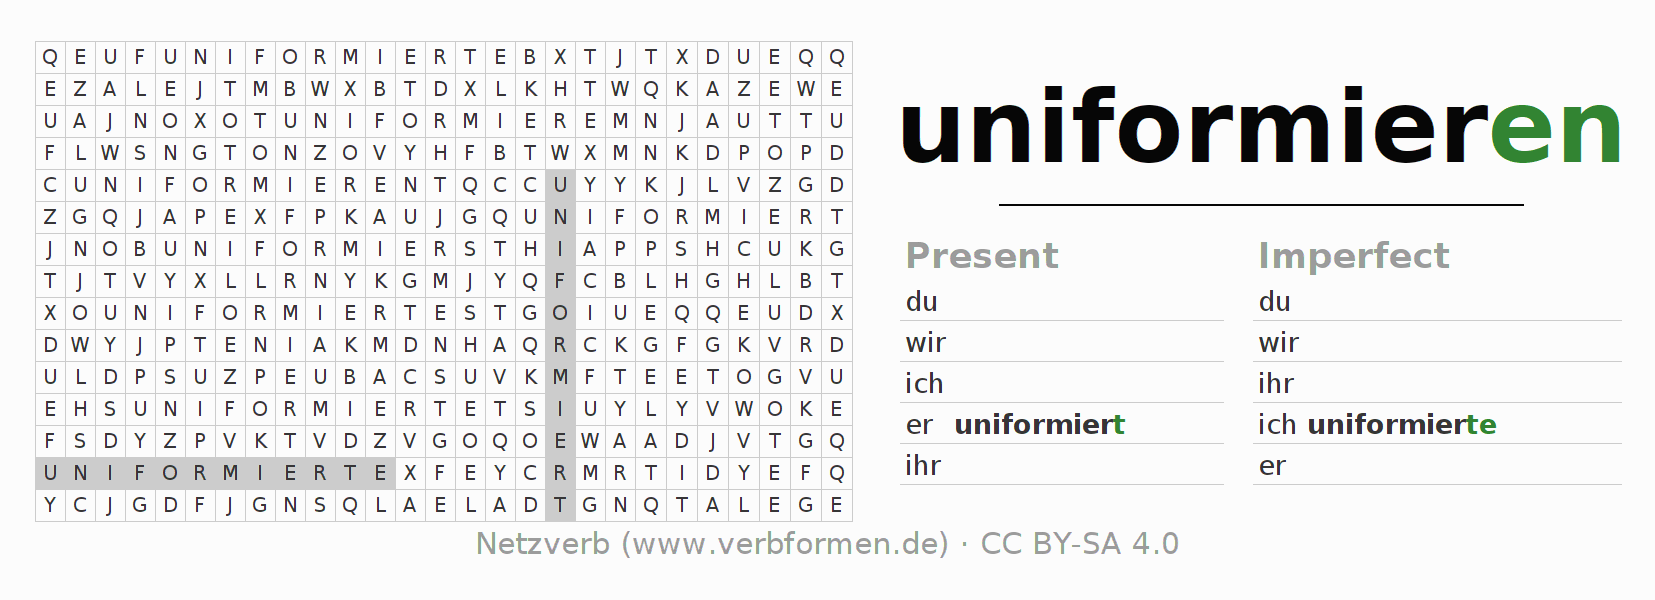 Word search puzzle for the conjugation of the verb uniformieren